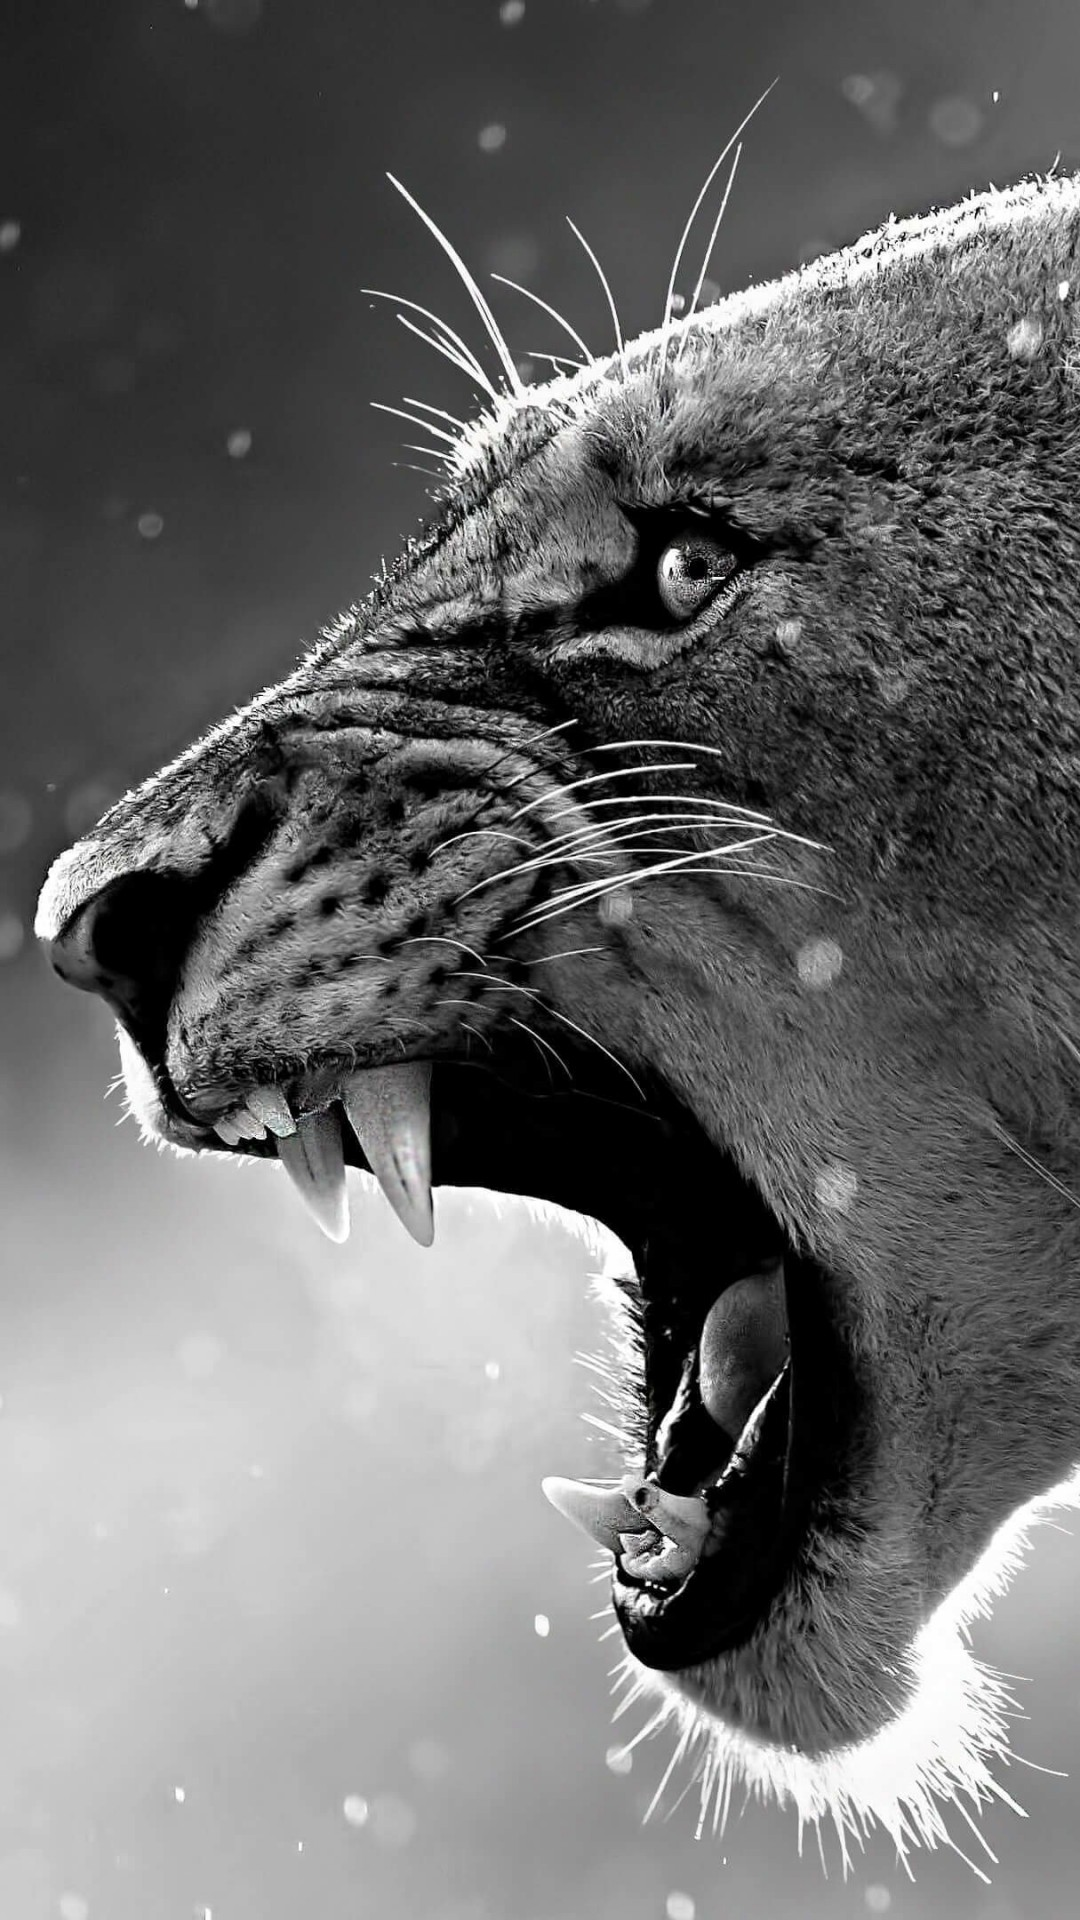 Lioness in Black & White Wallpaper for HTC One